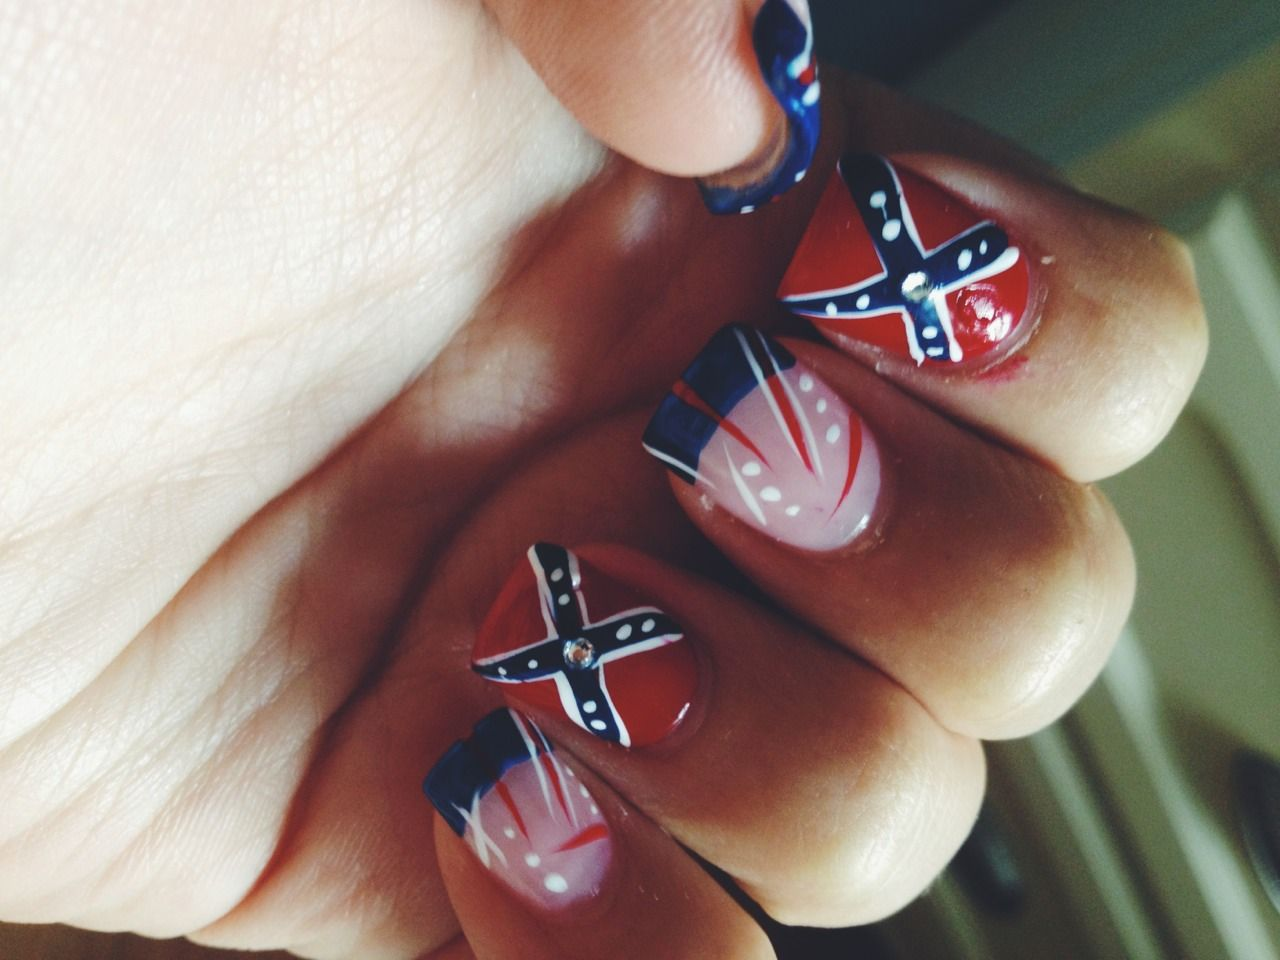 countrybeauty-xo : Photo · Nail DesignsRebel Flag ... - Countrybeauty-xo : Photo Super Cute Ideas Pinterest Rebel